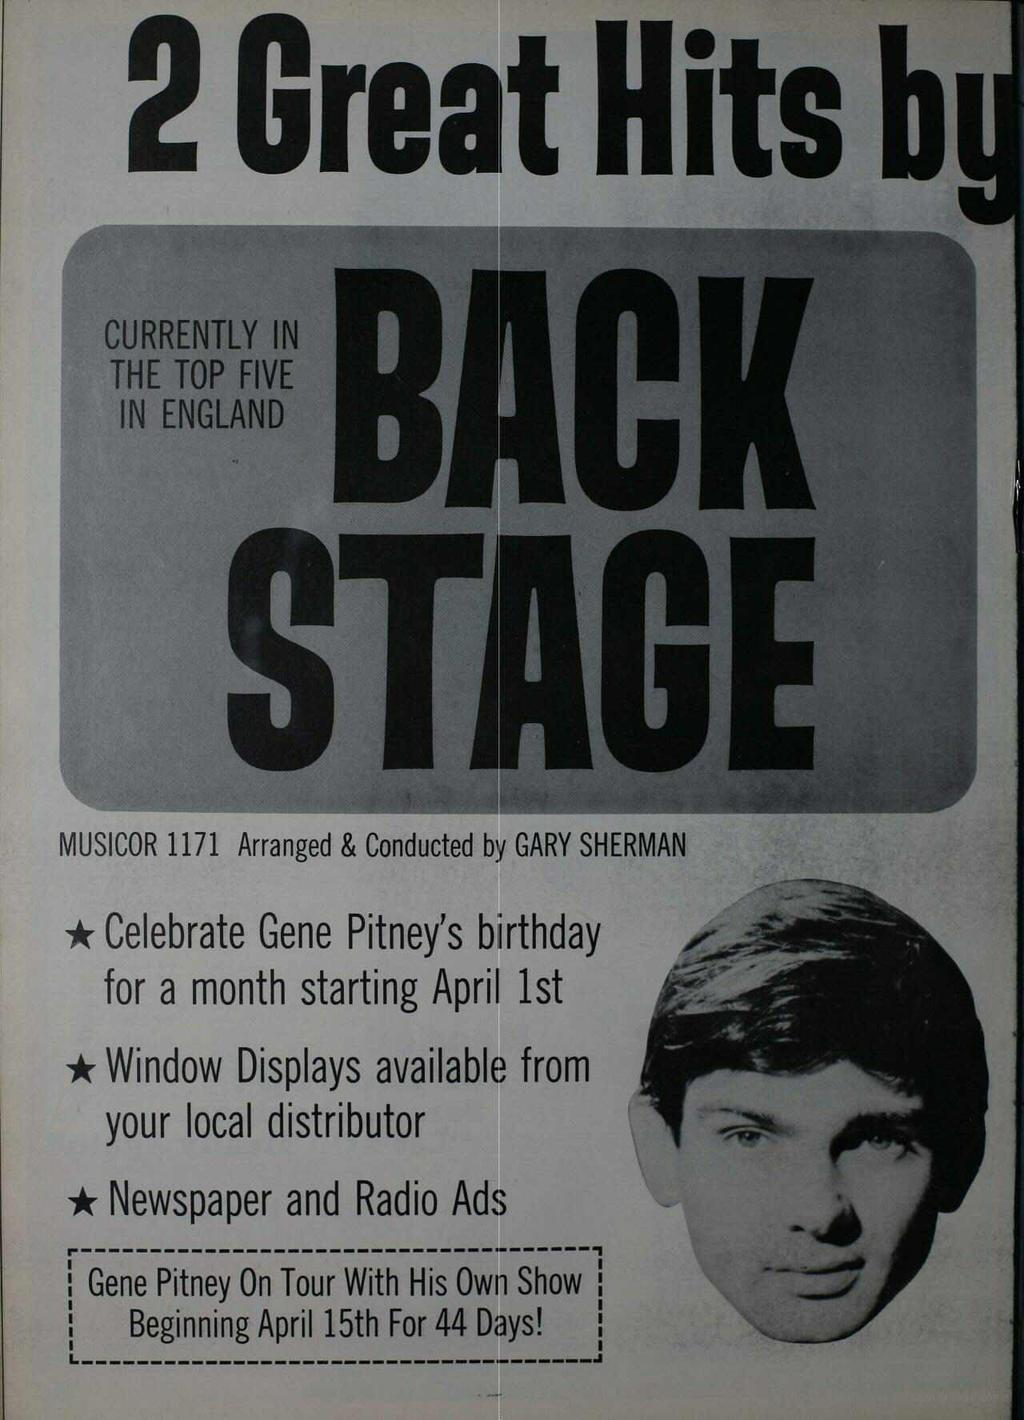 2 Grea t Hits b CURRENTLY IN THE TOP FIVE IN ENGLAND AC STAG MUSICOR 1171 Arranged & Conducted by GARY SHERMAN * Celebrate Gene Pitney's birthday for a month